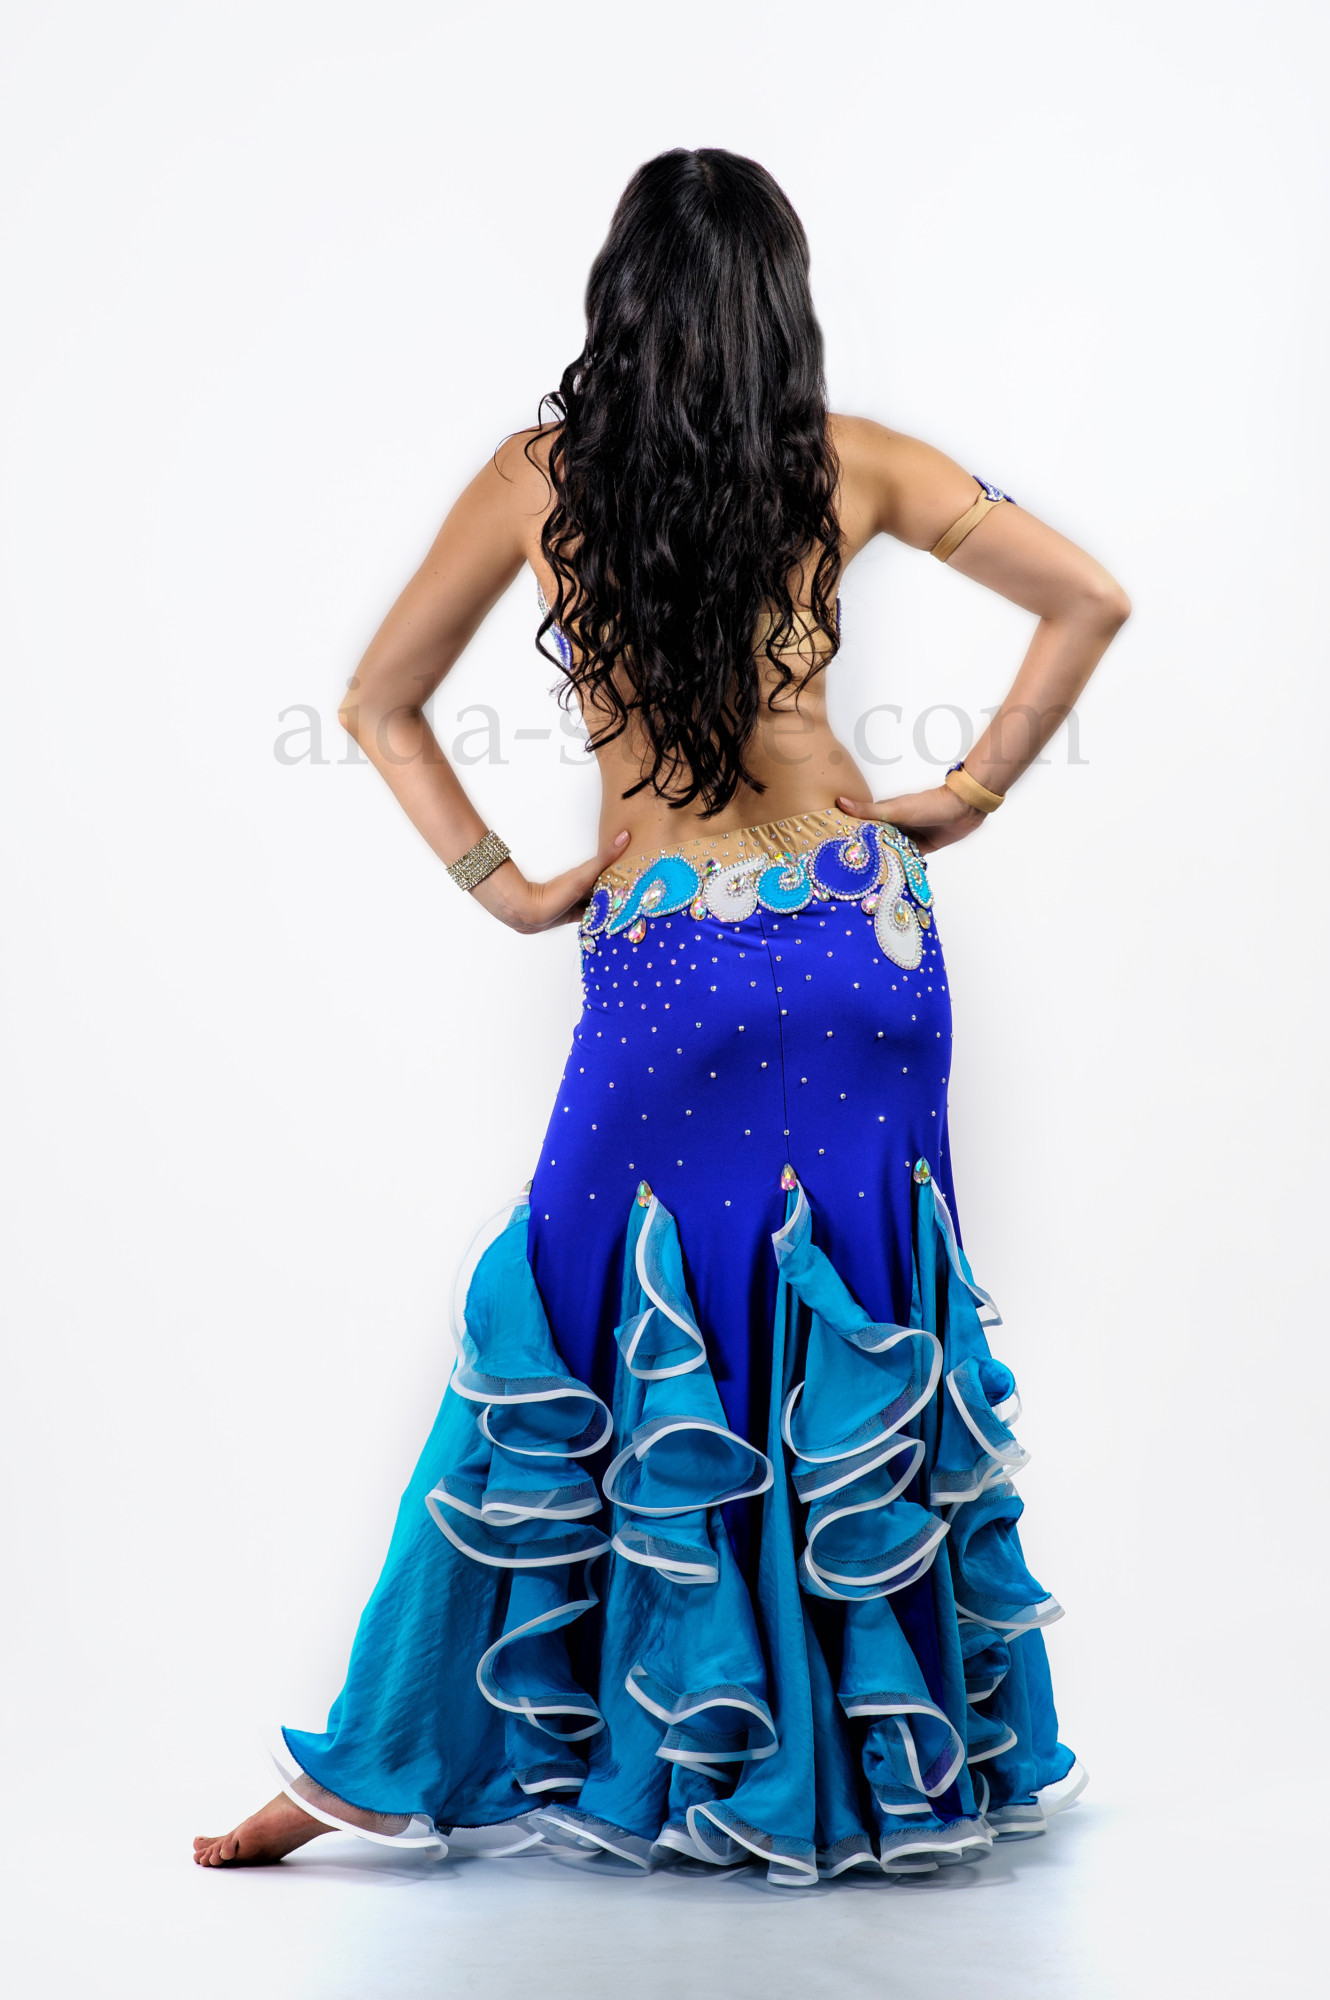 Blue professional belly dance costume with ruffles